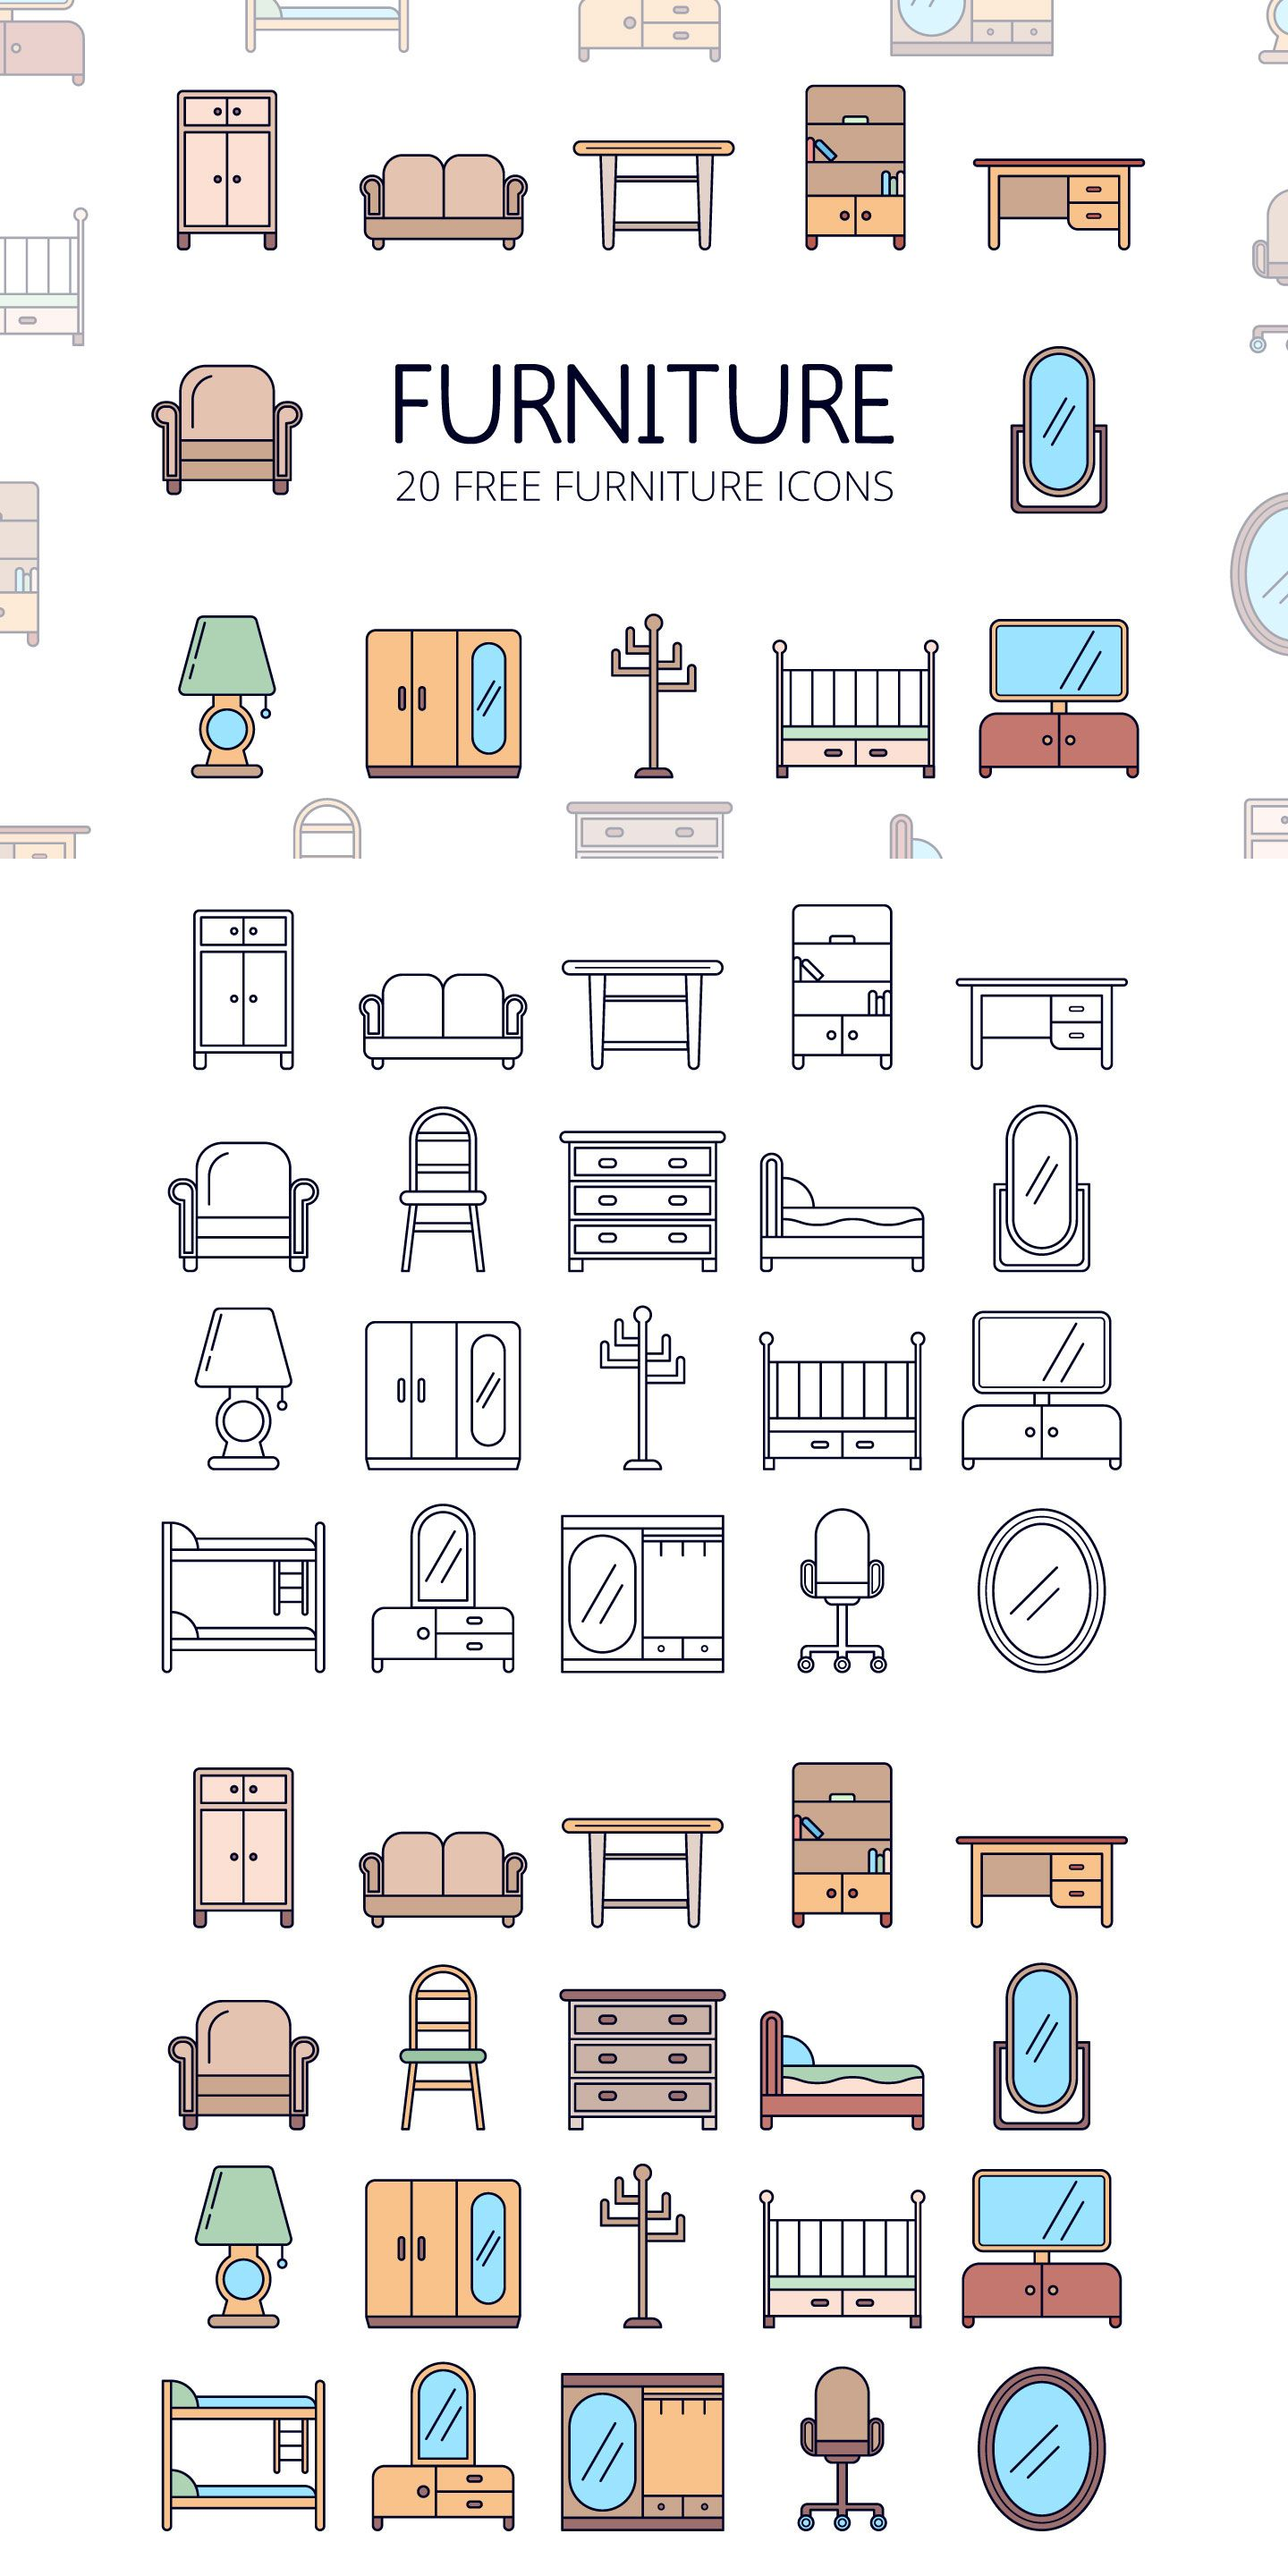 Furniture Free Vector Icon Set Icon set, Vector icons